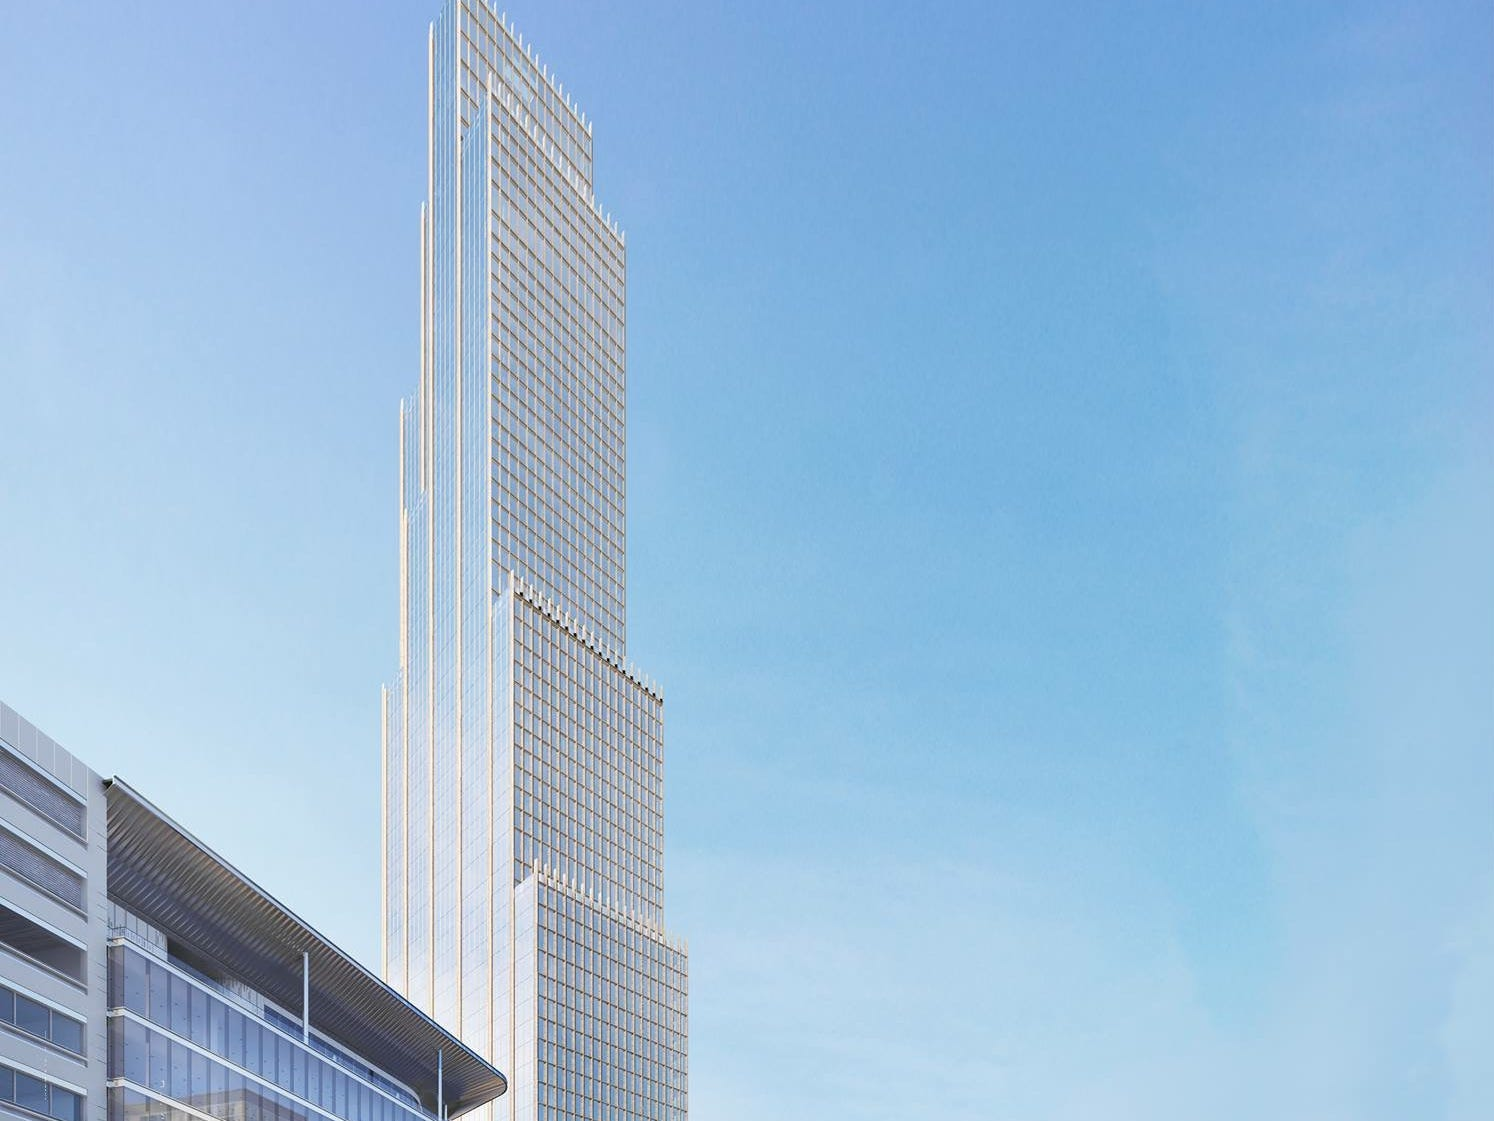 Bedrock released the new renderings Sunday, which include a stepped tower rising to a height of 912 feet.